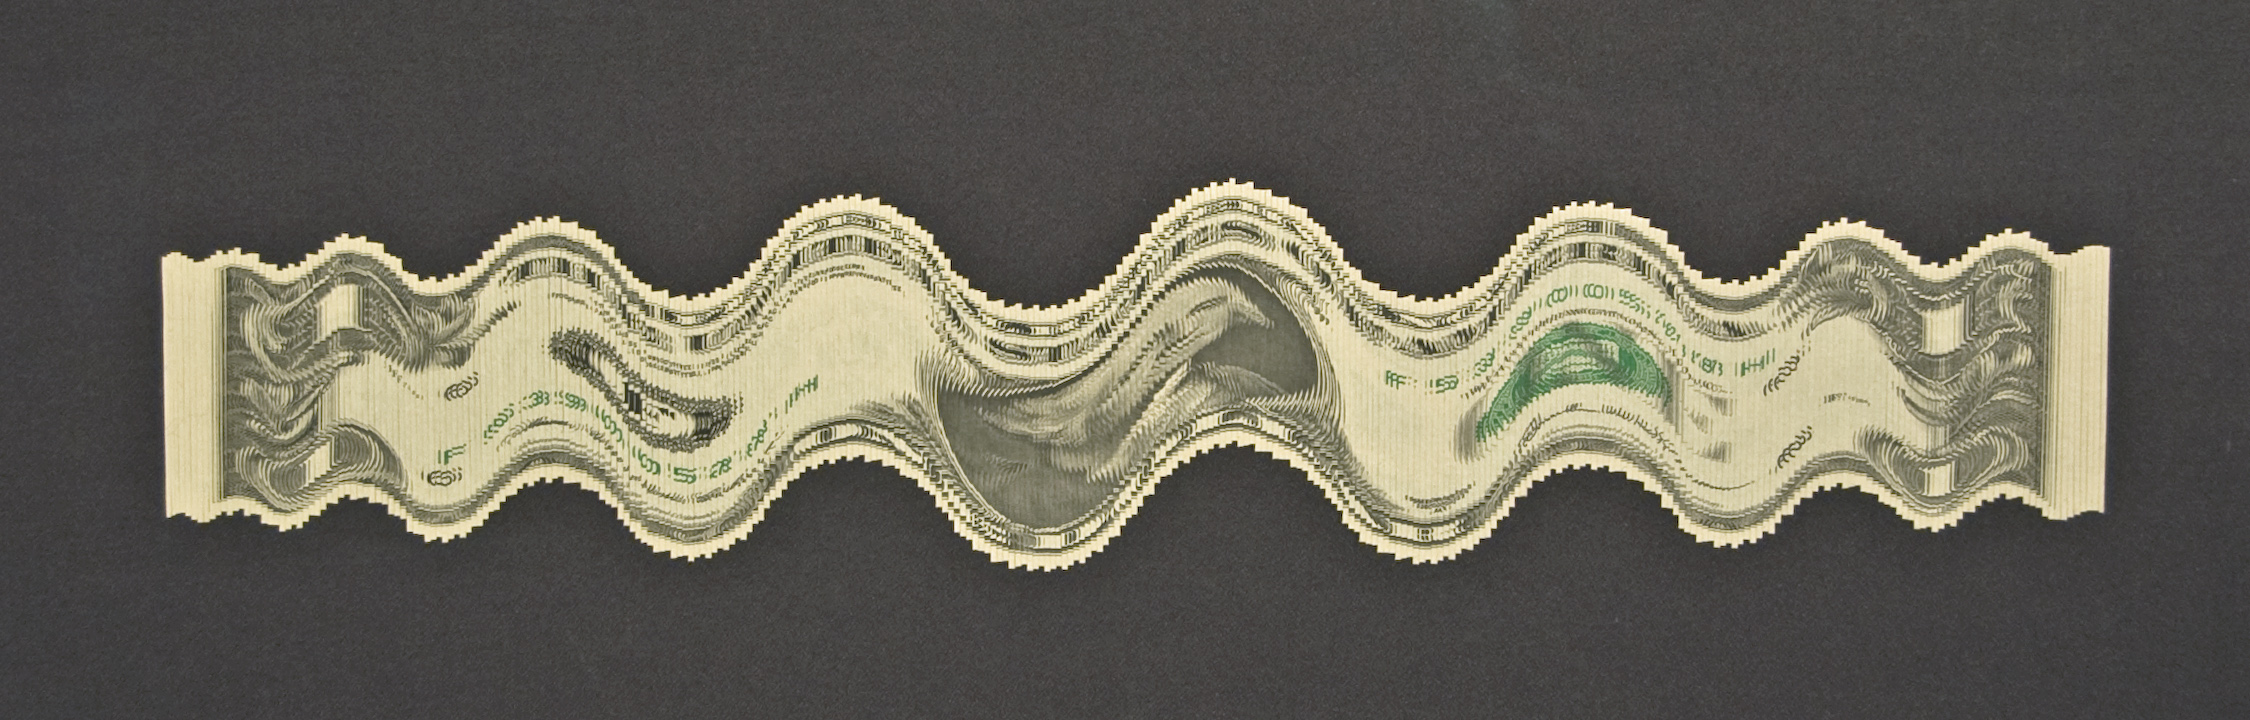 "Mark Wagner ""Fluctuation"" cut US Currency."